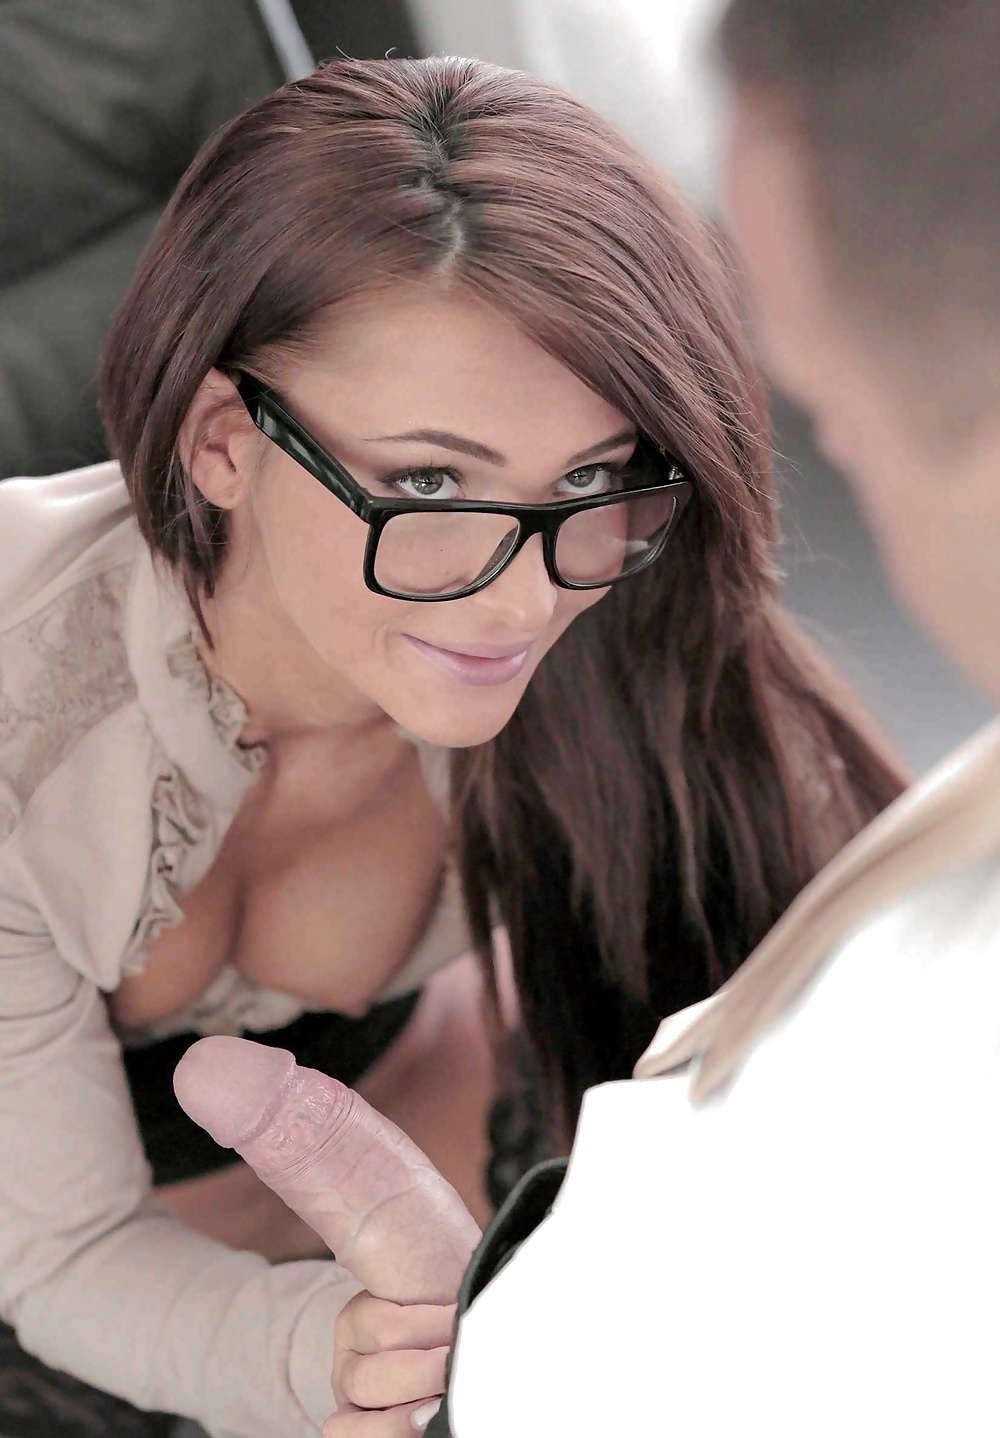 girl-with-glasses-and-black-guy-porn-girl-on-girl-cum-filled-asshole